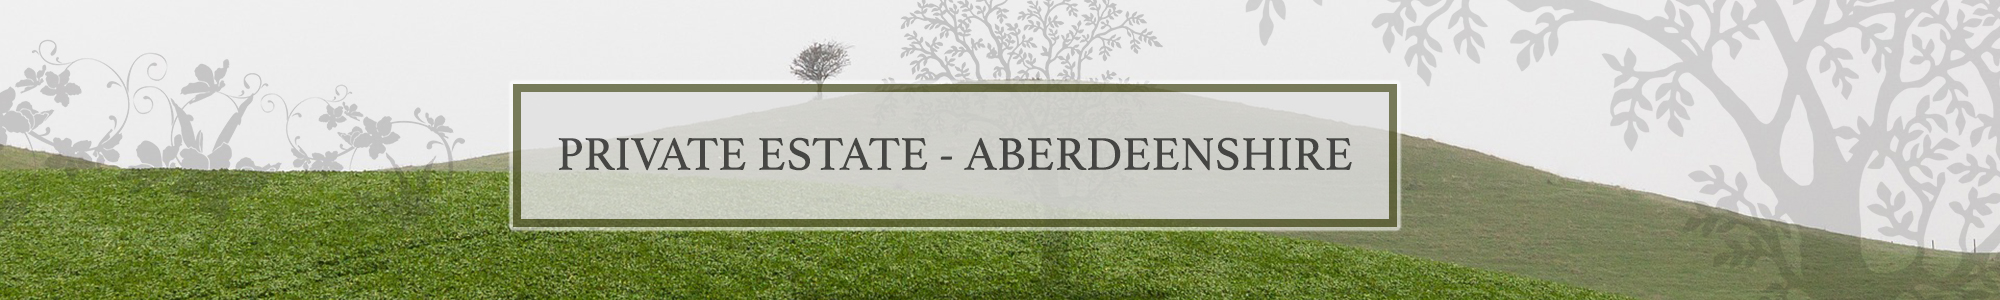 Private Estate - Aberdeenshire